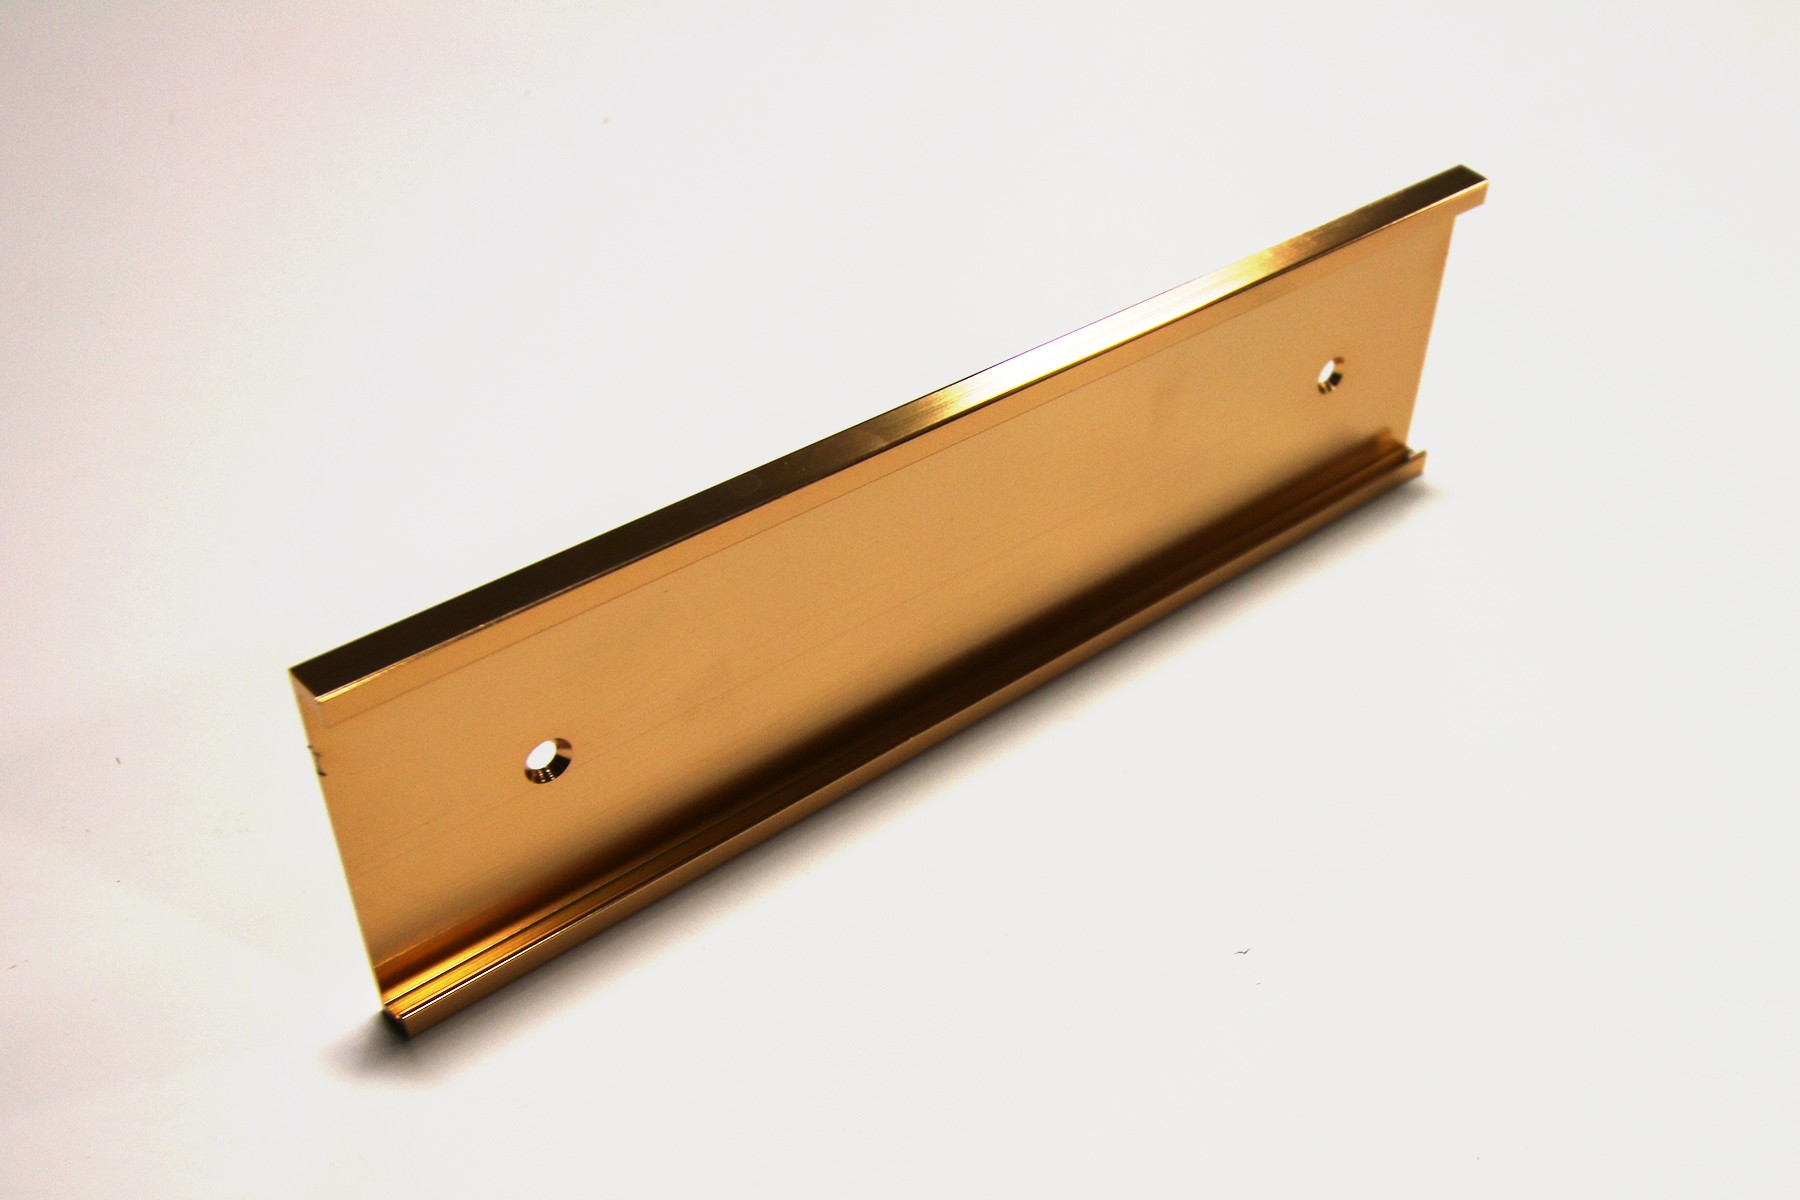 2 x 36 Wall Holder, Gold